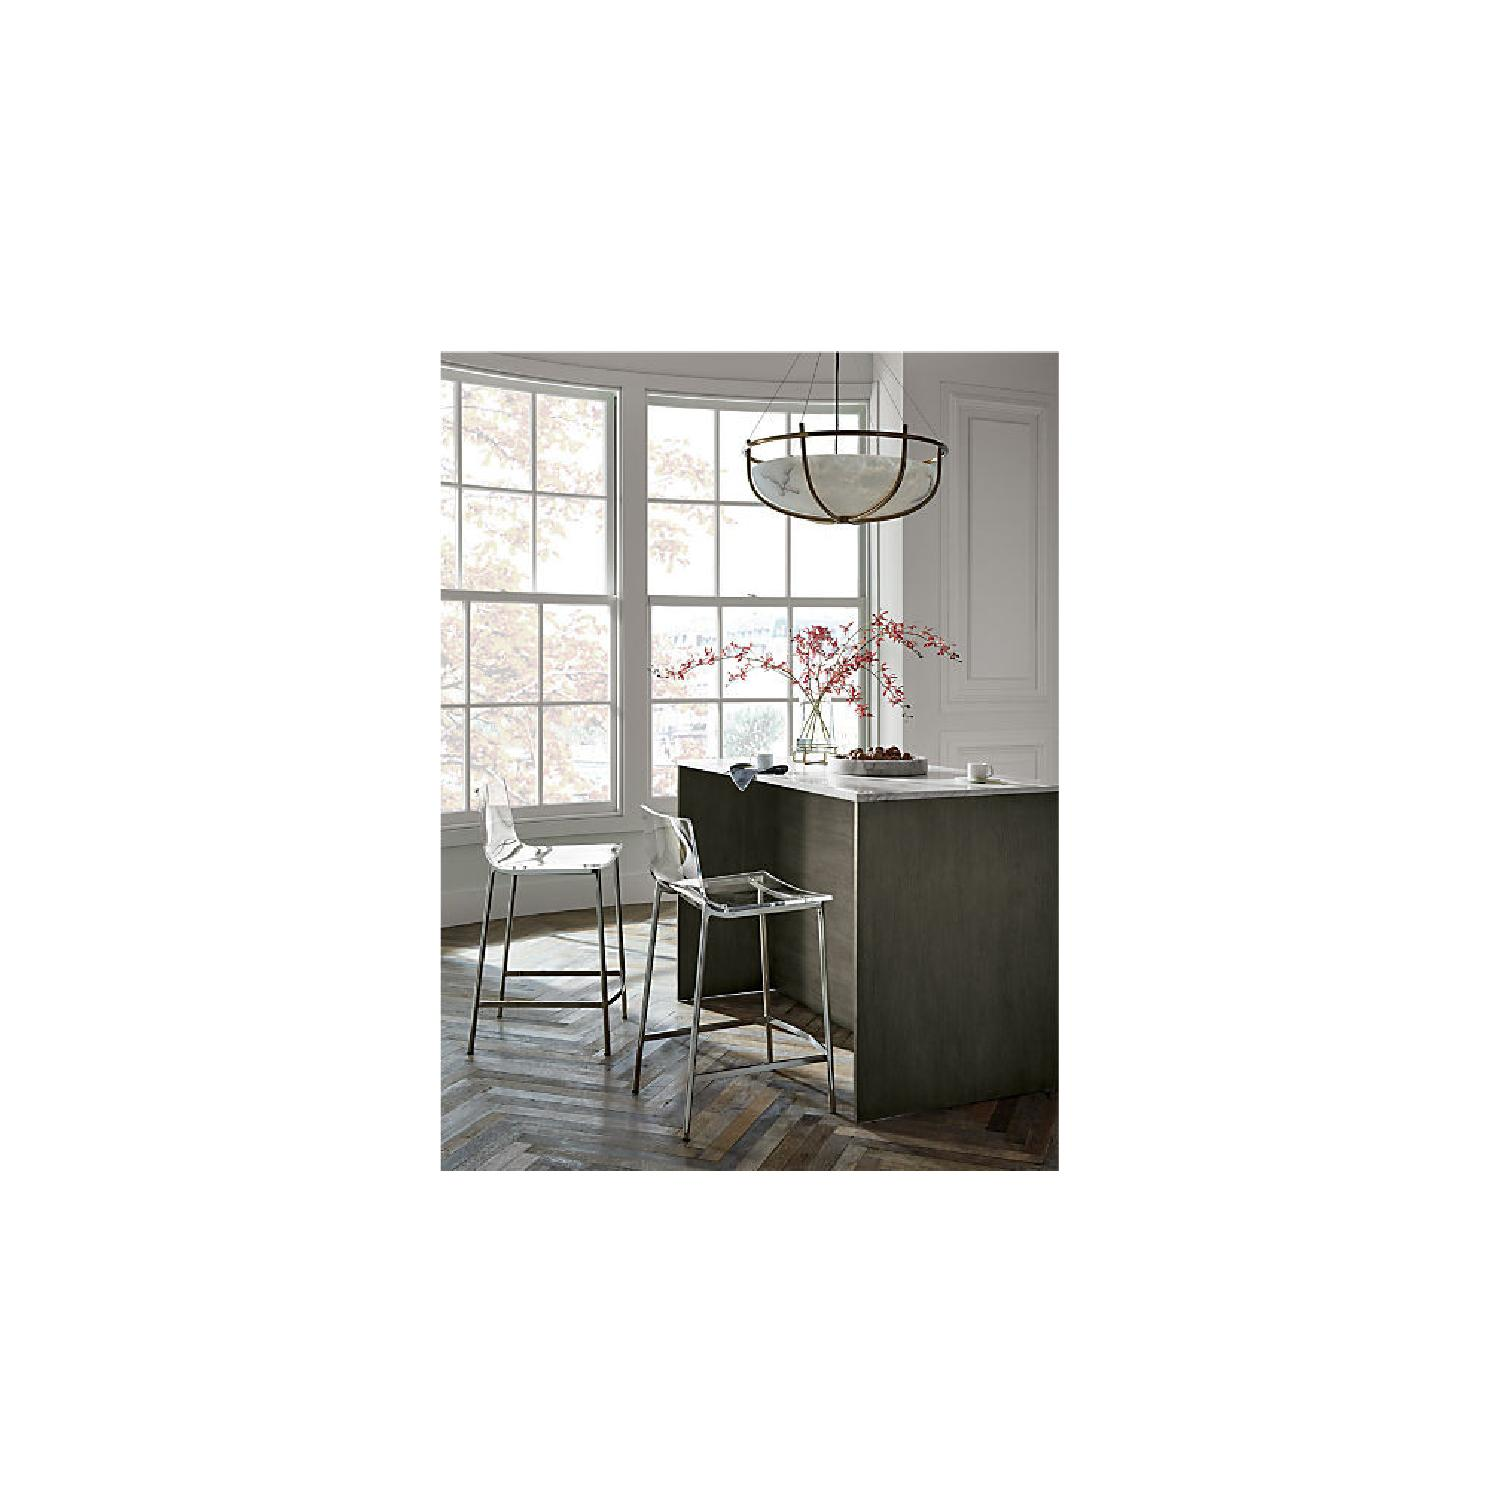 CB2 Clear Barstools in Nickel Finish - image-2